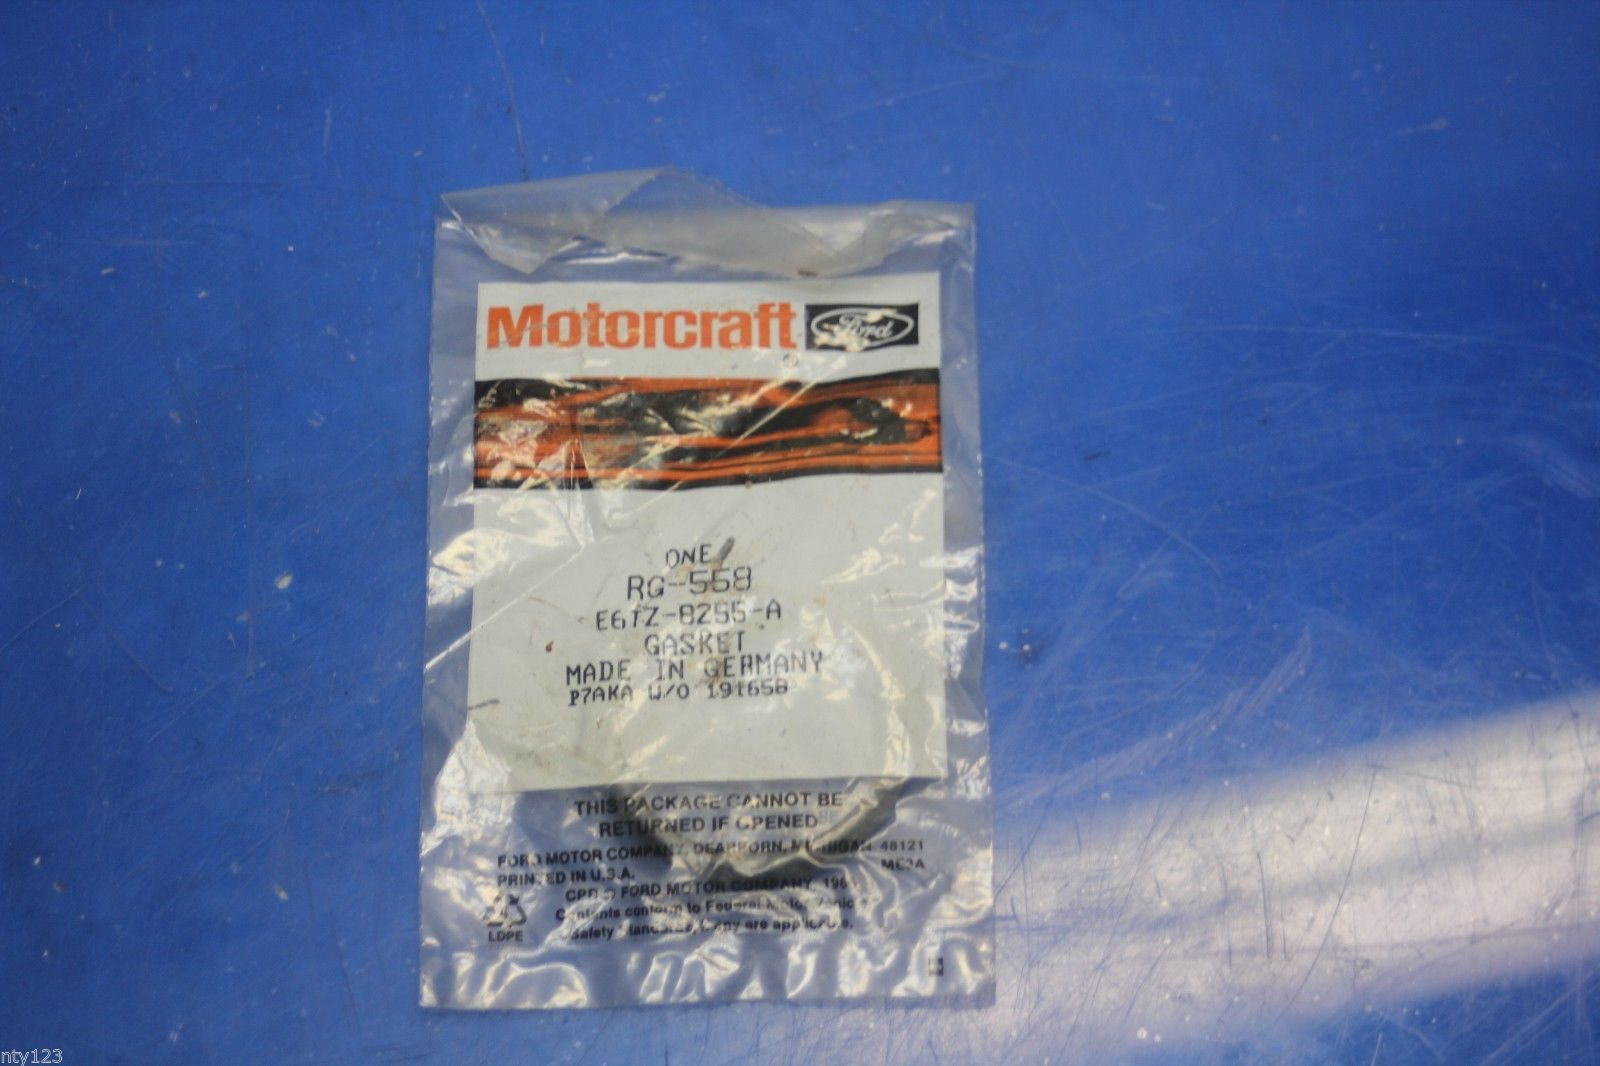 MOTORCRAFT RG-558 FORD E6TZ-8255-A Rubber Ring